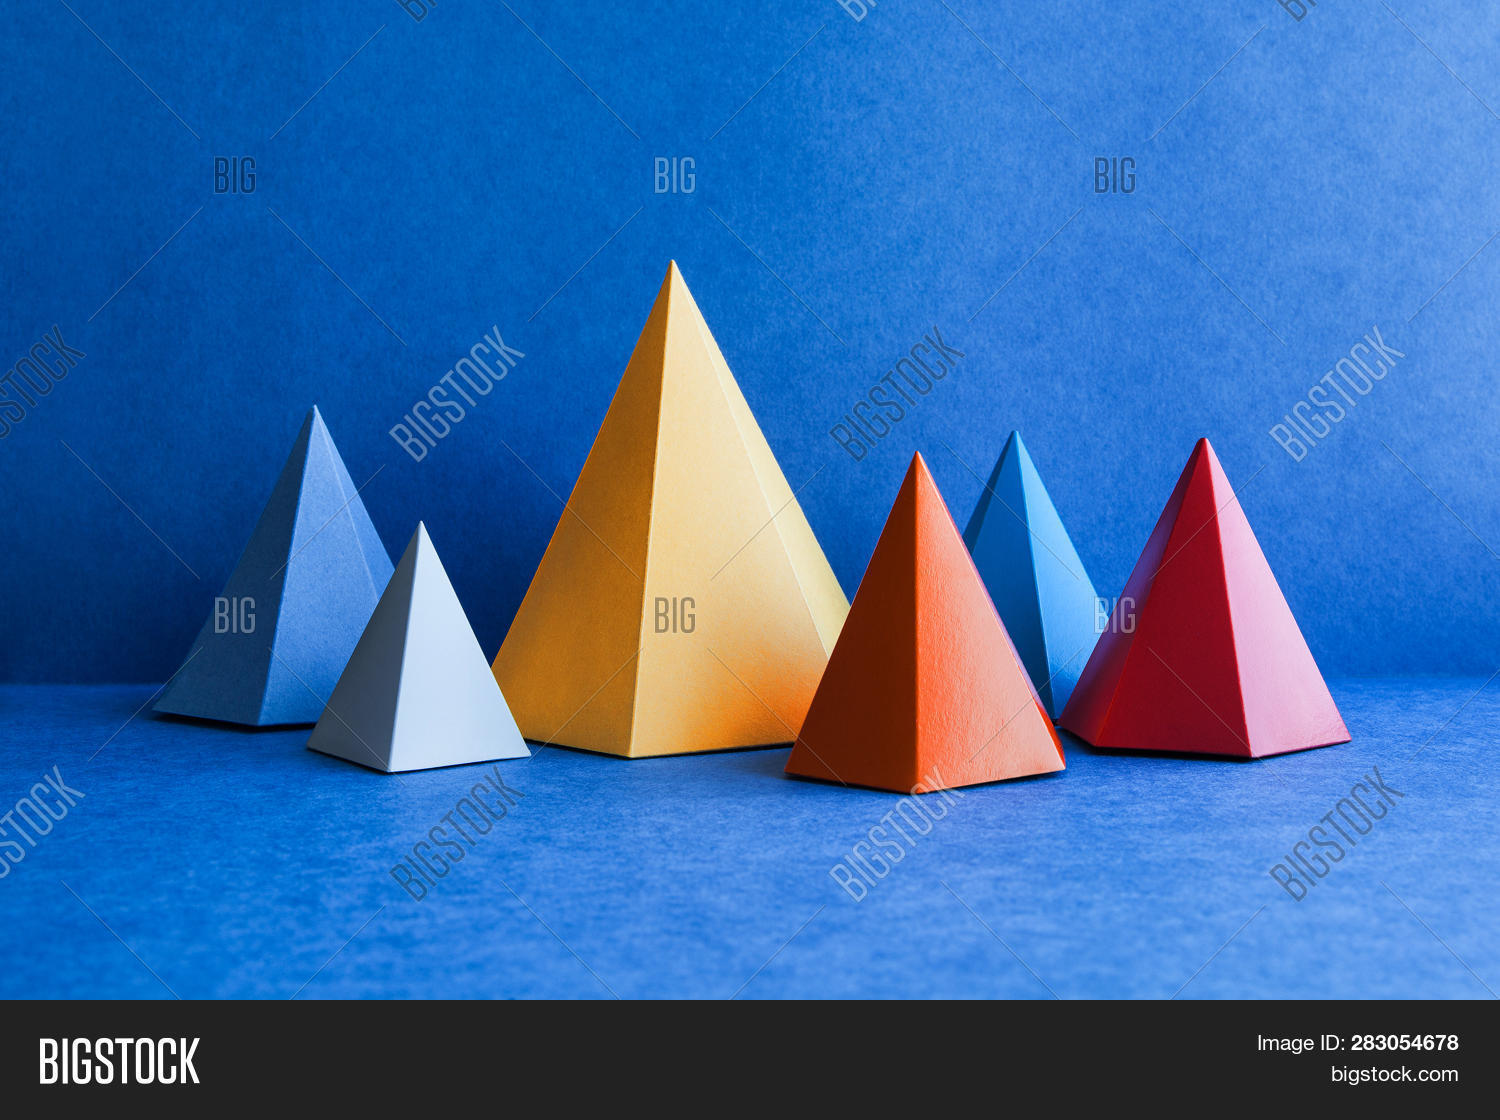 abstract,angles,art,beautiful,blue,color,colorful,design,edge,face,figure,flat,geometric,geometrical,geometry,gray,green,height,length,minimal,minimalism,object,paper,pink,plane,platonic,polyhedron,prism,pyramid,rectangular,shadow,shape,simple,simplicity,simplify,surfaces,symmetry,tetrahedron,three-dimensional,triangle,triangular,volume,yellow